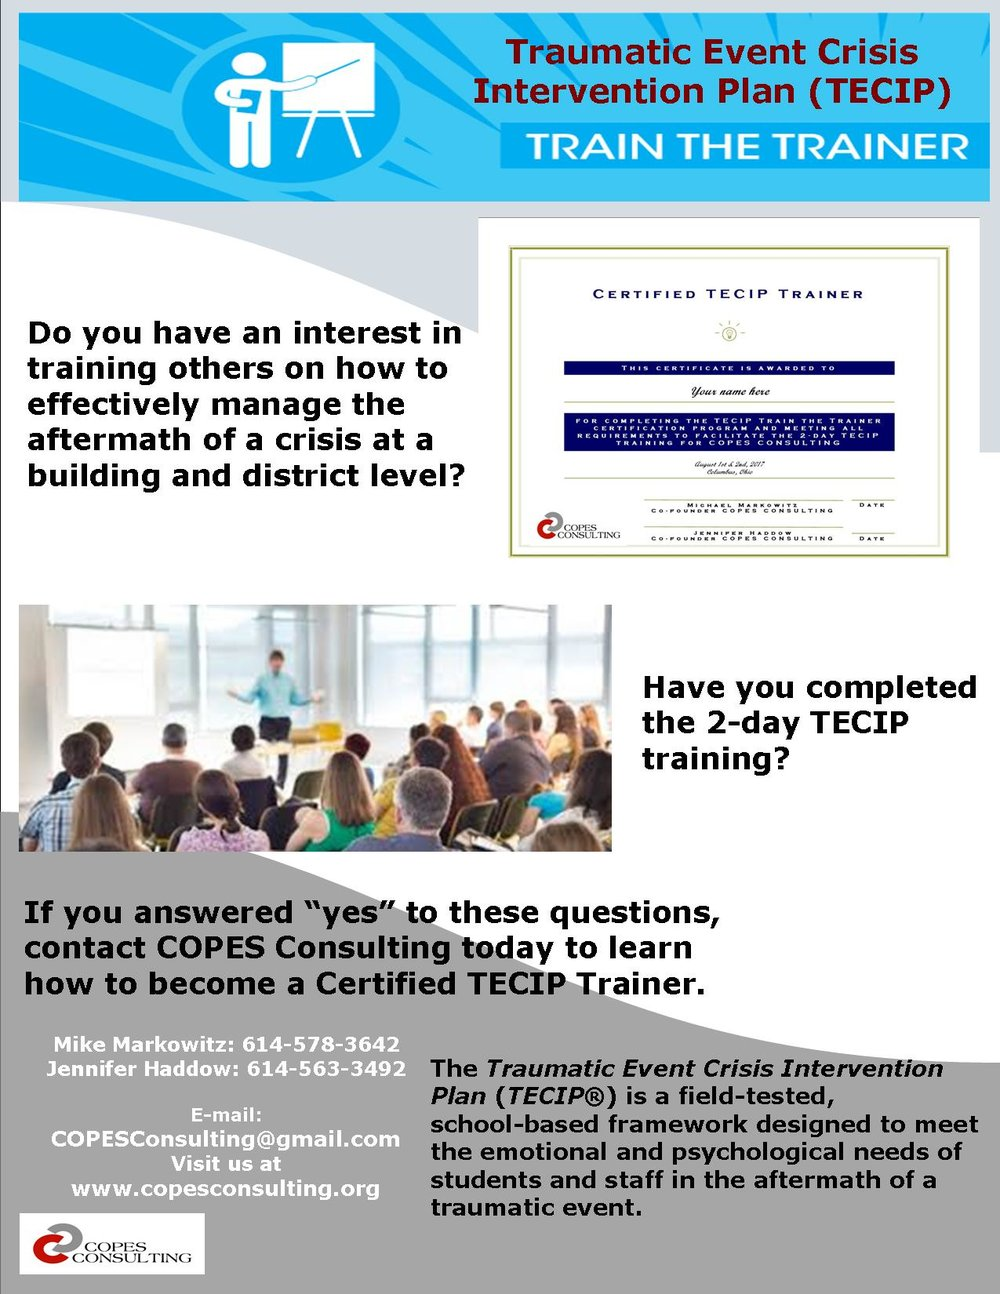 Tecip Train The Trainer Certification Copes Consulting